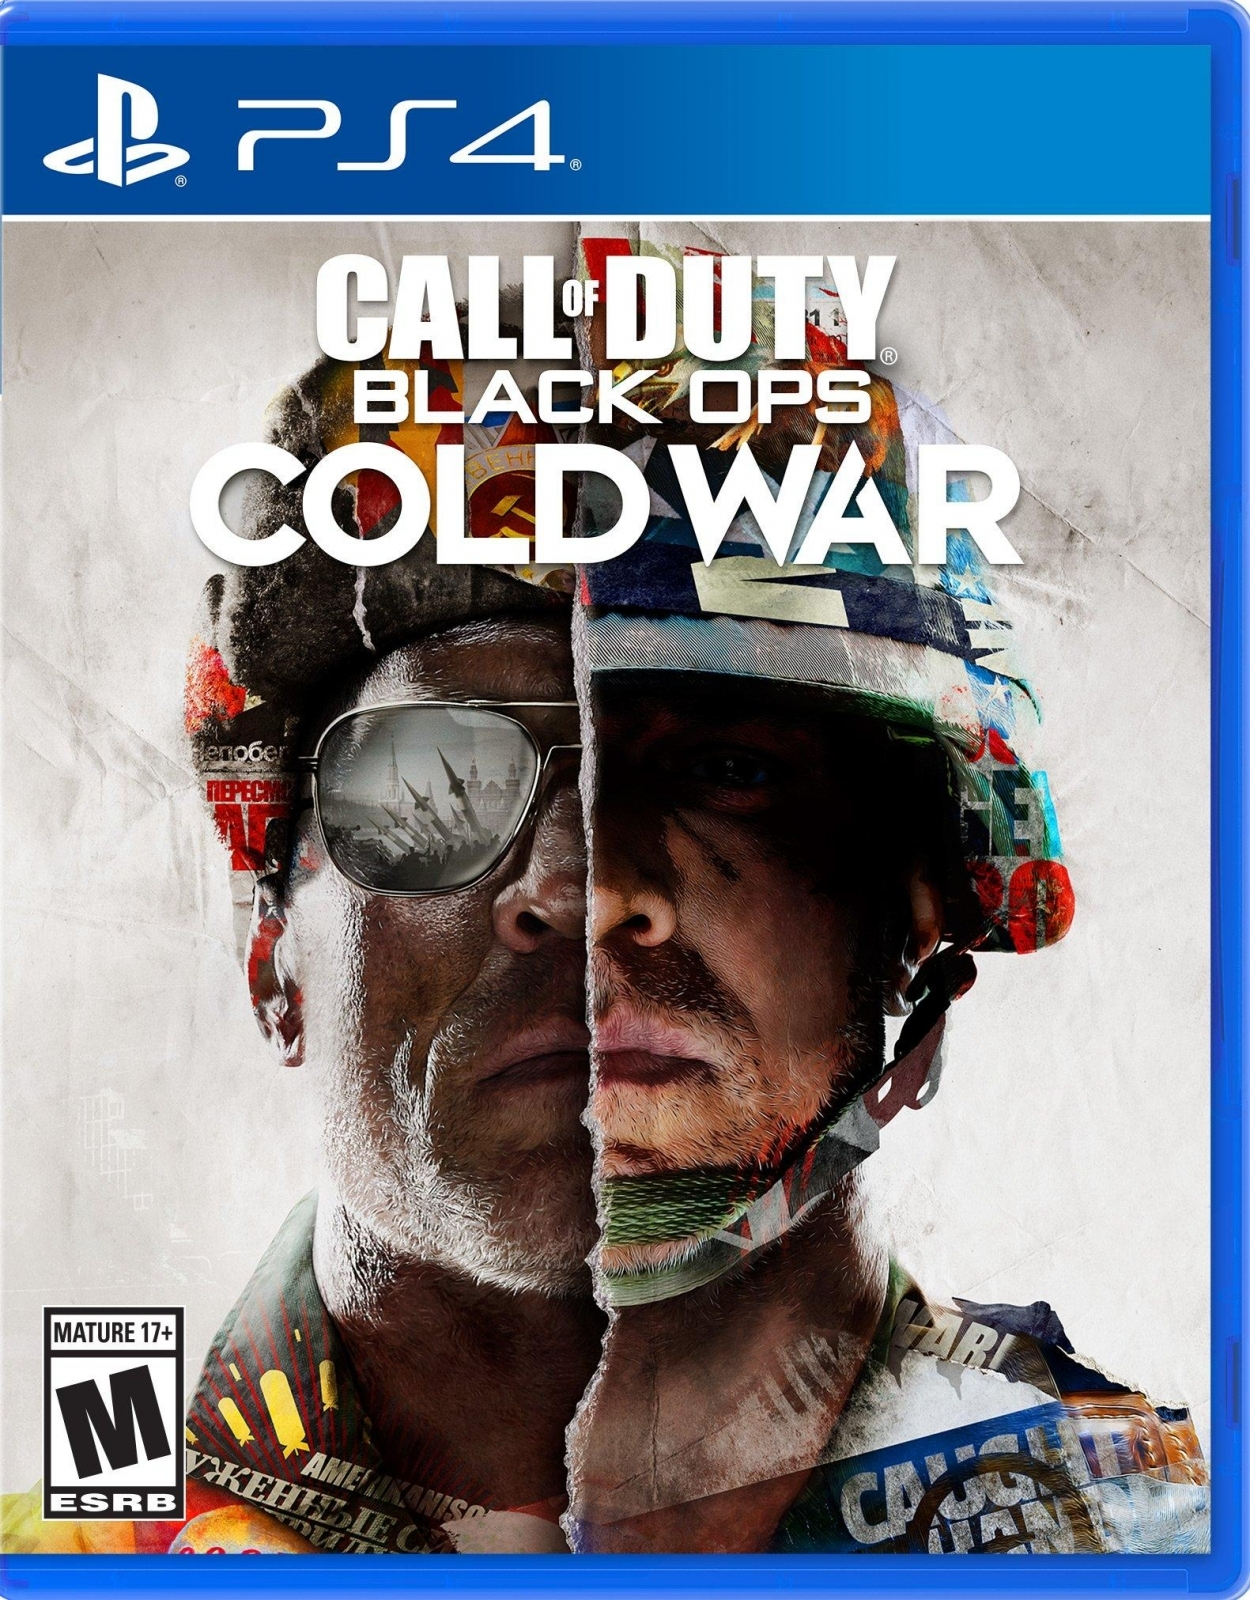 Call of Duty Black Ops Cold War PS4 - Dublado Português - Atacado dos Jogos